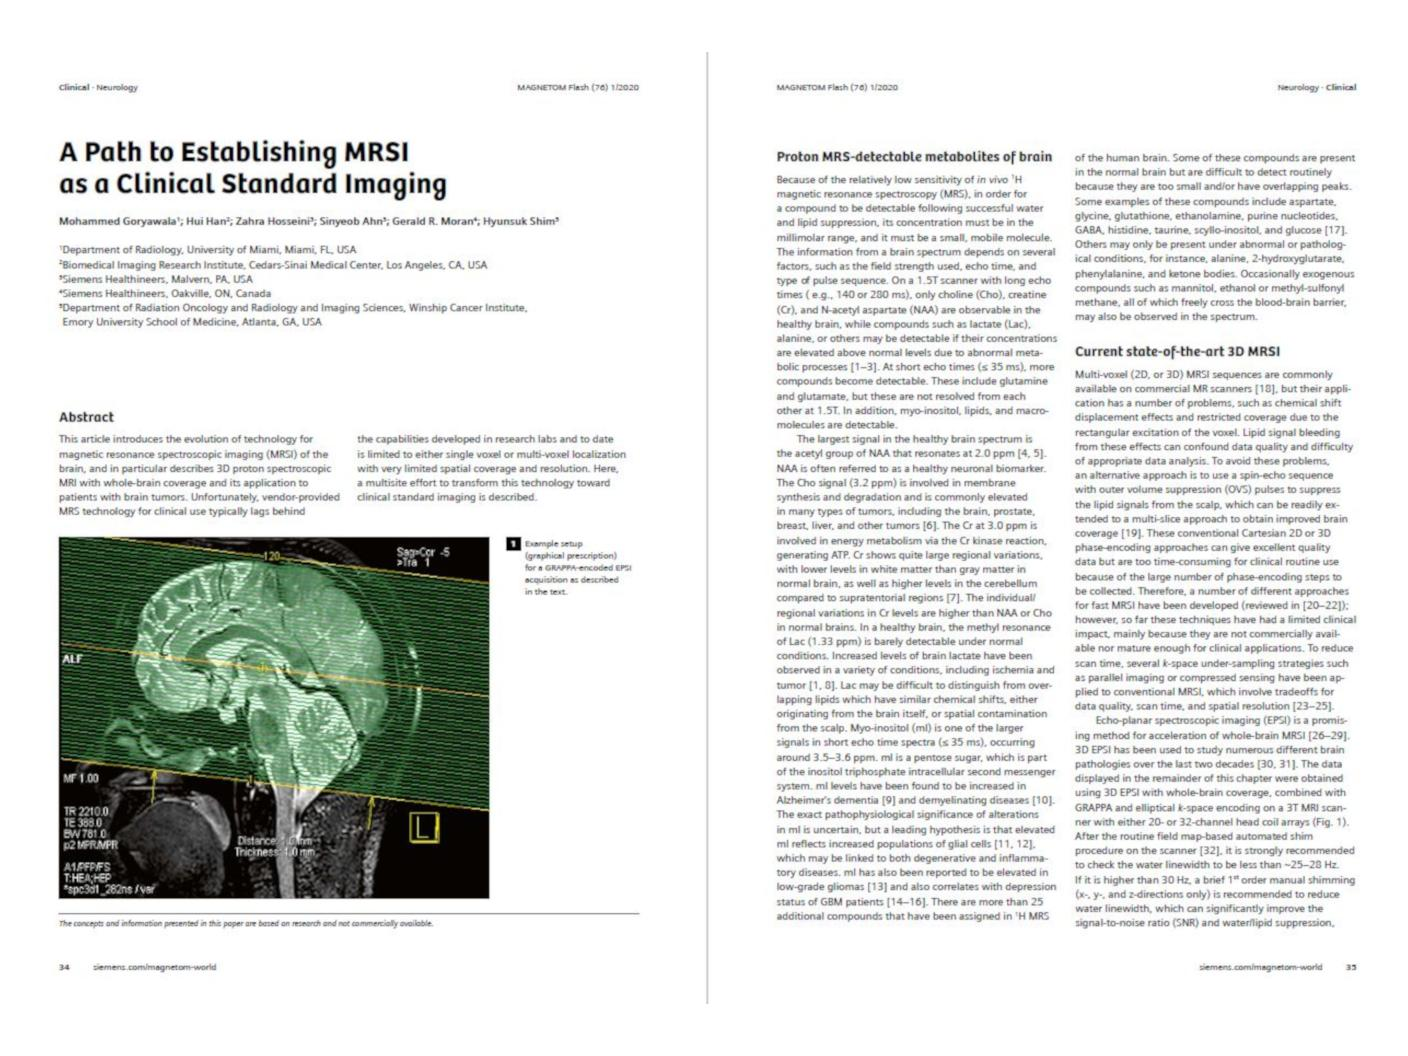 A Path to Establishing MRSI as a Clinical Standard Imaging